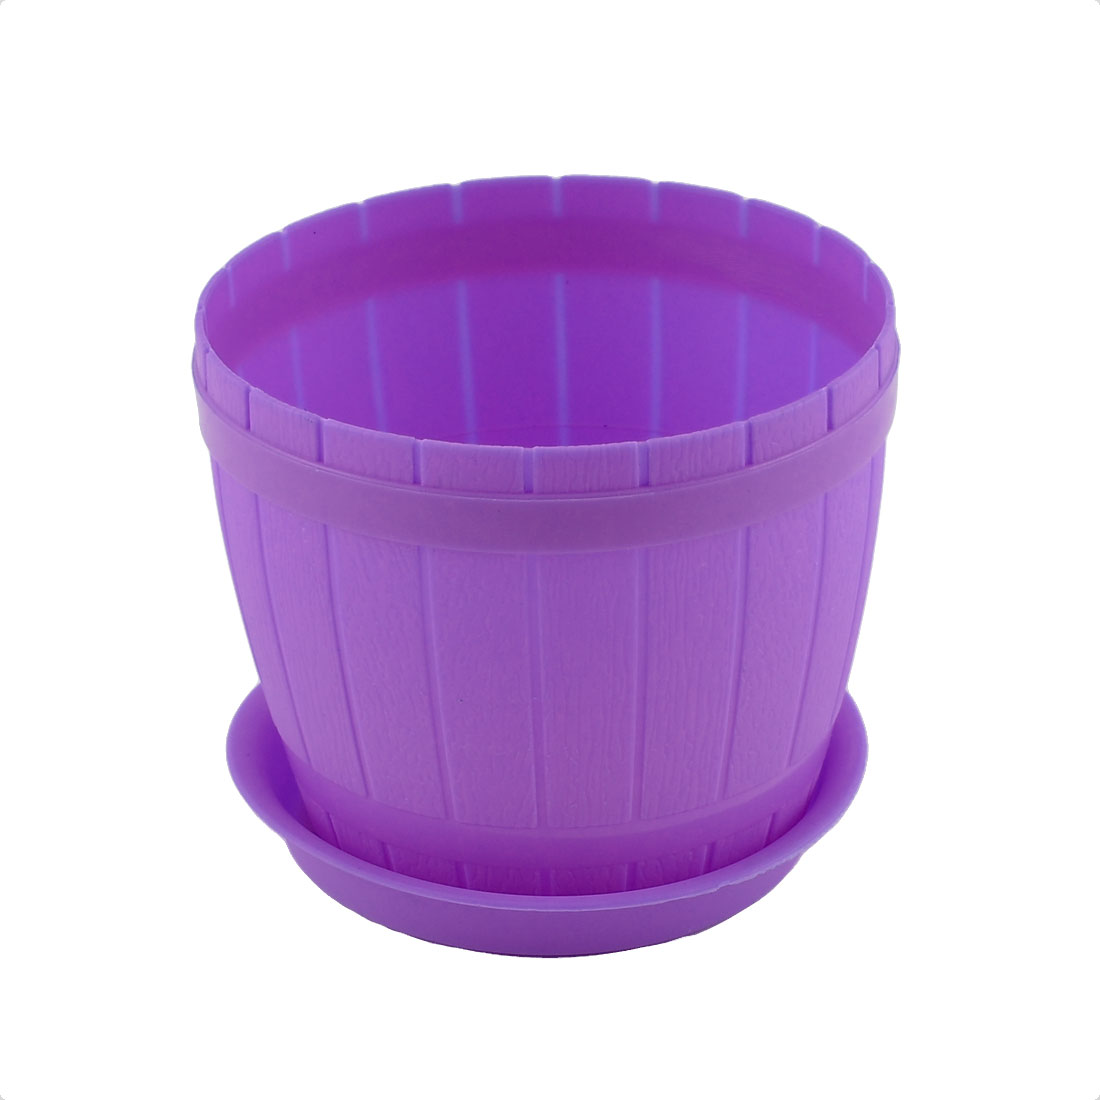 Balcony Garden Office Plastic Plant Flower Pot Holder Purple w Tray